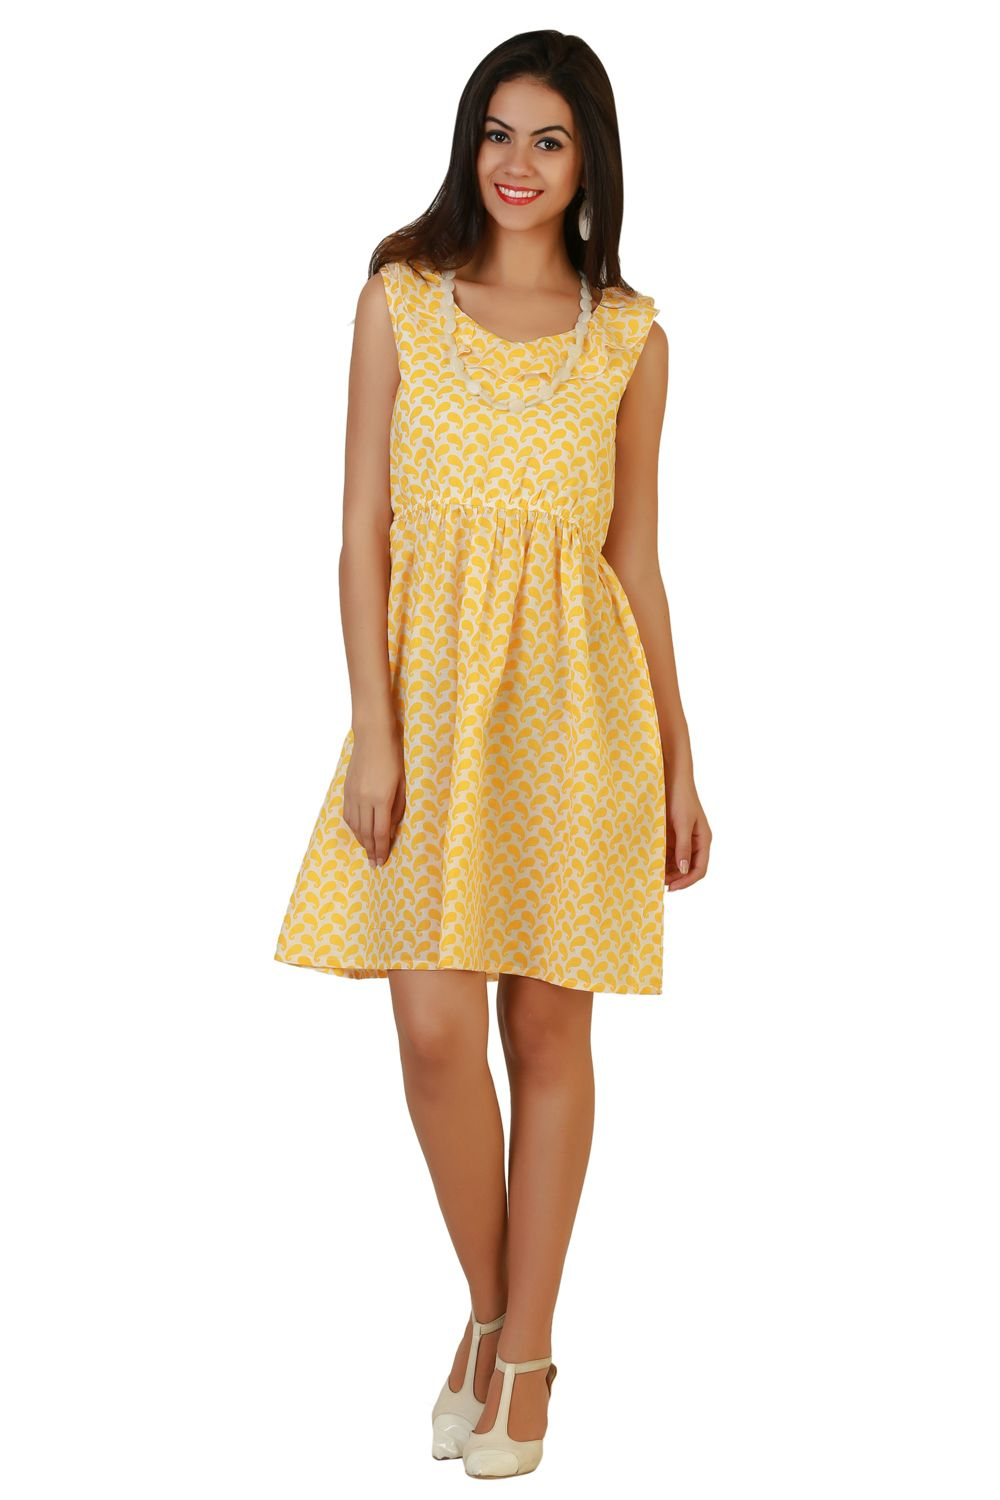 5cde0eac268 Shop Online for Belle Fille Yellow Dresses in India at Voonik.com ...